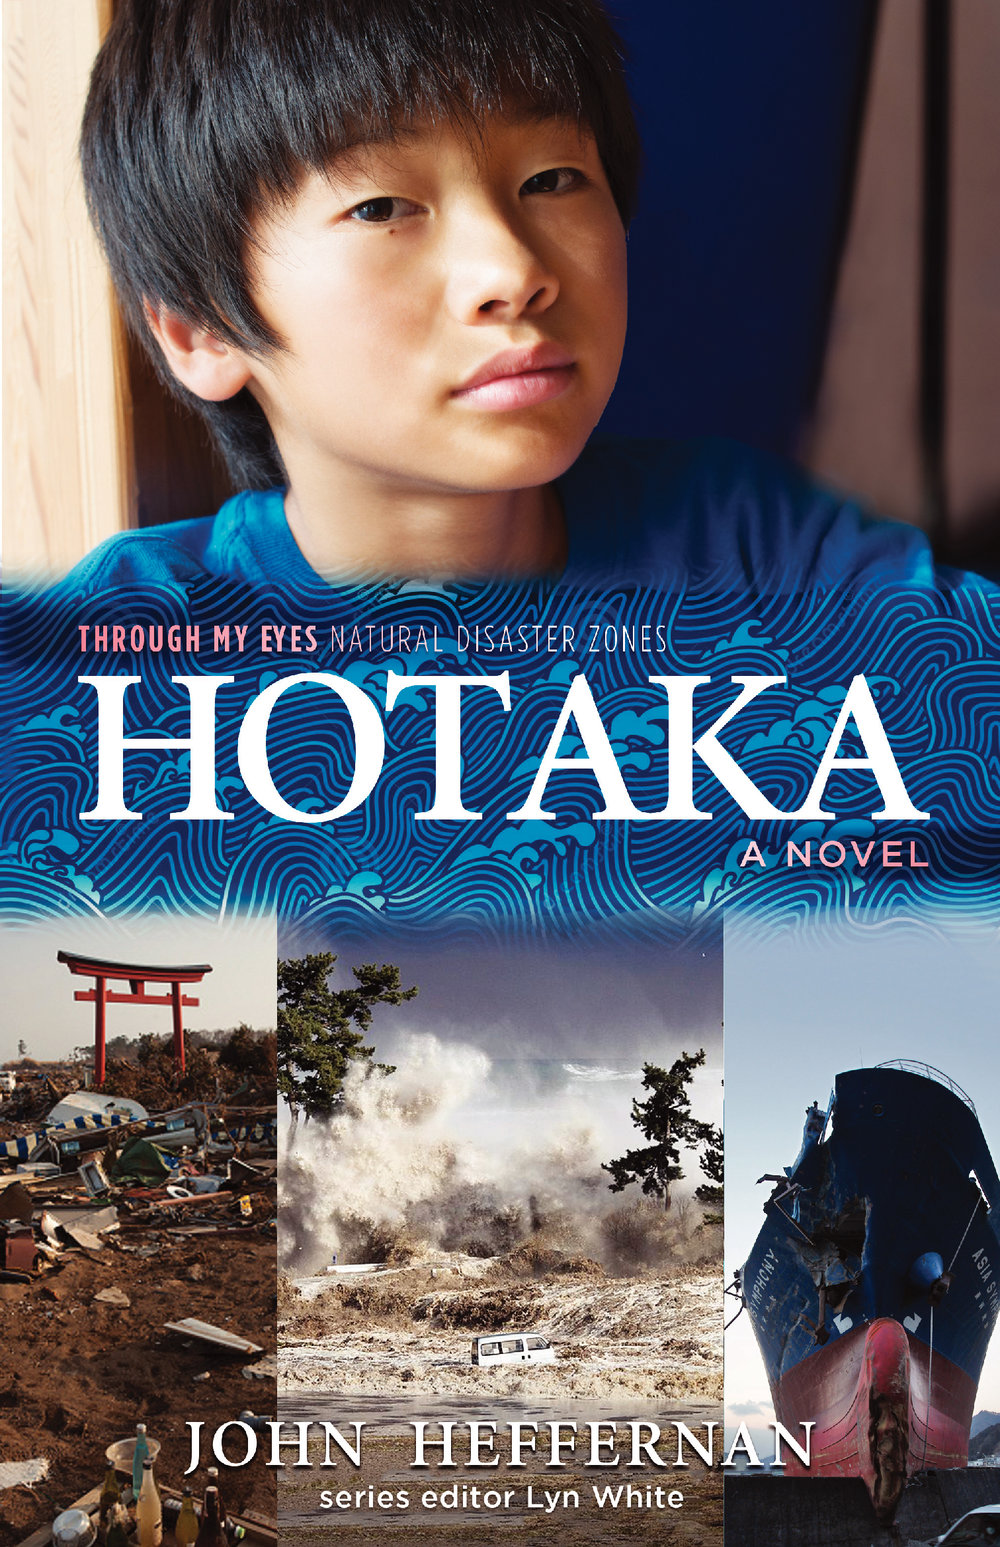 "HOTAKA  is the first book in the second  Through My Eyes  series   from Allen & Unwin that examines natural disasters - a starkly realistic novel about the Japanese tsunami of March, 2011. It explores the impact of the disaster on one teenage boy, the introspective Hotaka, and to a lesser degree on his two best friends, feisty Sakura and tech-head Osamu. In doing this, the book also examines the huge social impact of the disaster on Hotaka's once beautiful little town of Omori-wan, utterly destroyed by the wave.   This is an uplifting book about hope and resilience in the face of loss, grief and tragedy, about the need people have for each other in times of adversity. On one level it is a simple human story of a boy facing the truth. Yet it is also a melding of many individual stories. In its broadest sense,  HOTAKA  is a tribute to the people of the Tohoku region for their amazing strength and capacity to help each other rise from the ashes and rebuild their lives.  ""I travelled to Japan to research  HOTAKA , talking to a range of teenage students, as well as teachers and principals. This deepened my grasp of the huge personal and social impact of the 2011 Tohoku disaster, and helped me understand some of the complexities of Japanese culture.""   HOTAKA  is suitable for readers from Upper Primary to Middle High School."